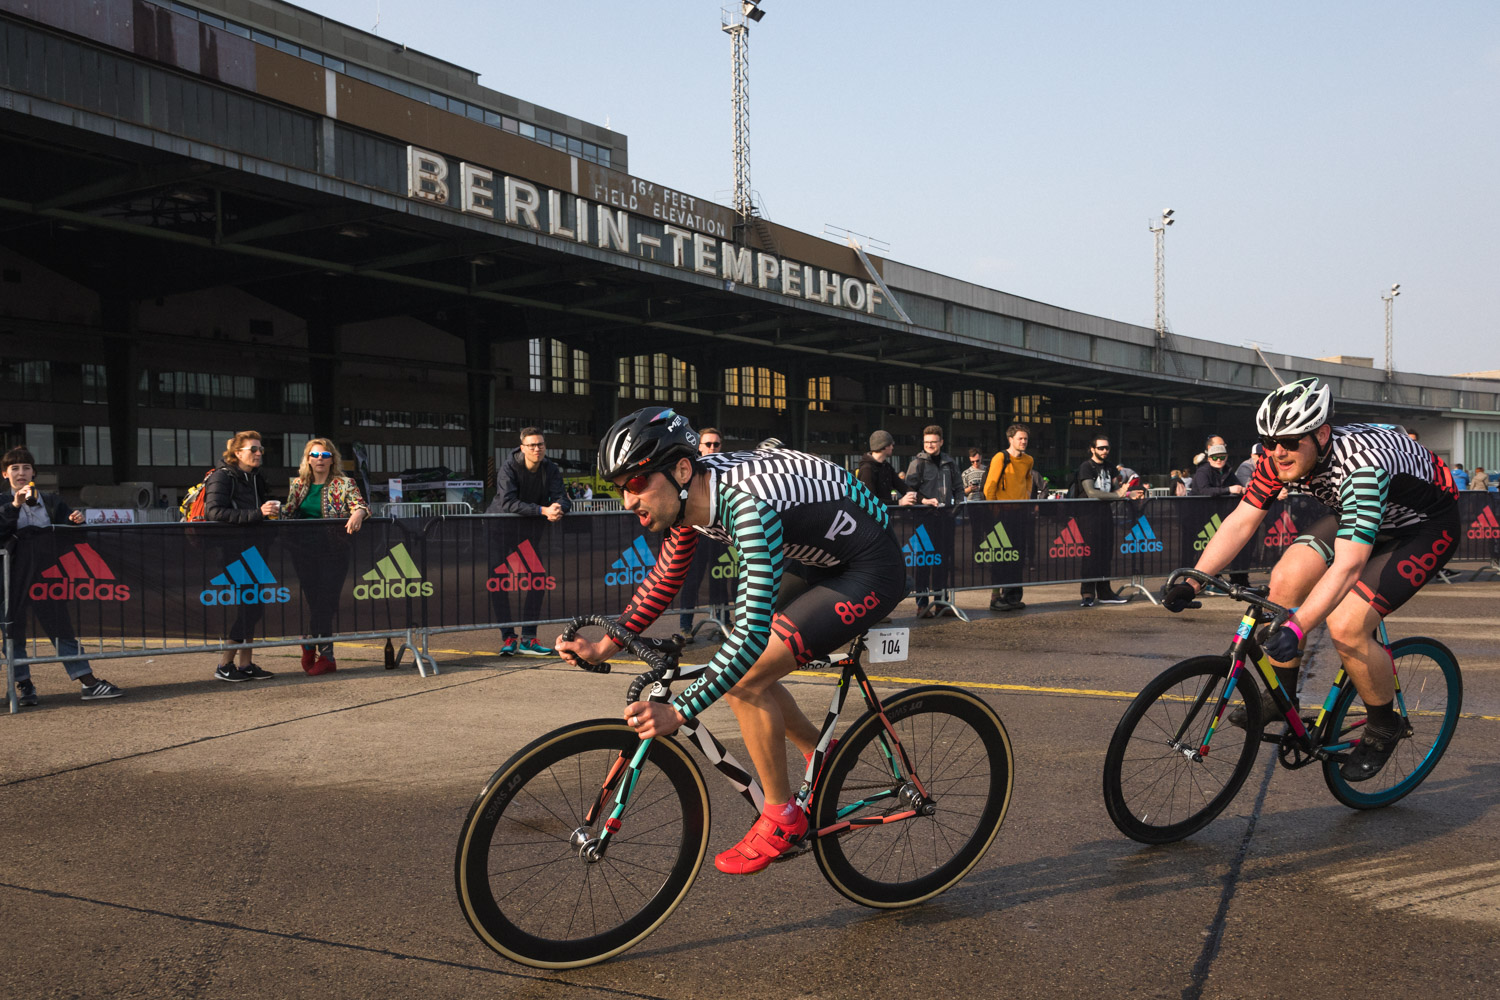 8brcrit 8bar rookies fixed gear crit 4 - Schnell, schneller, 8bar crit 2018 - der Rennbericht!